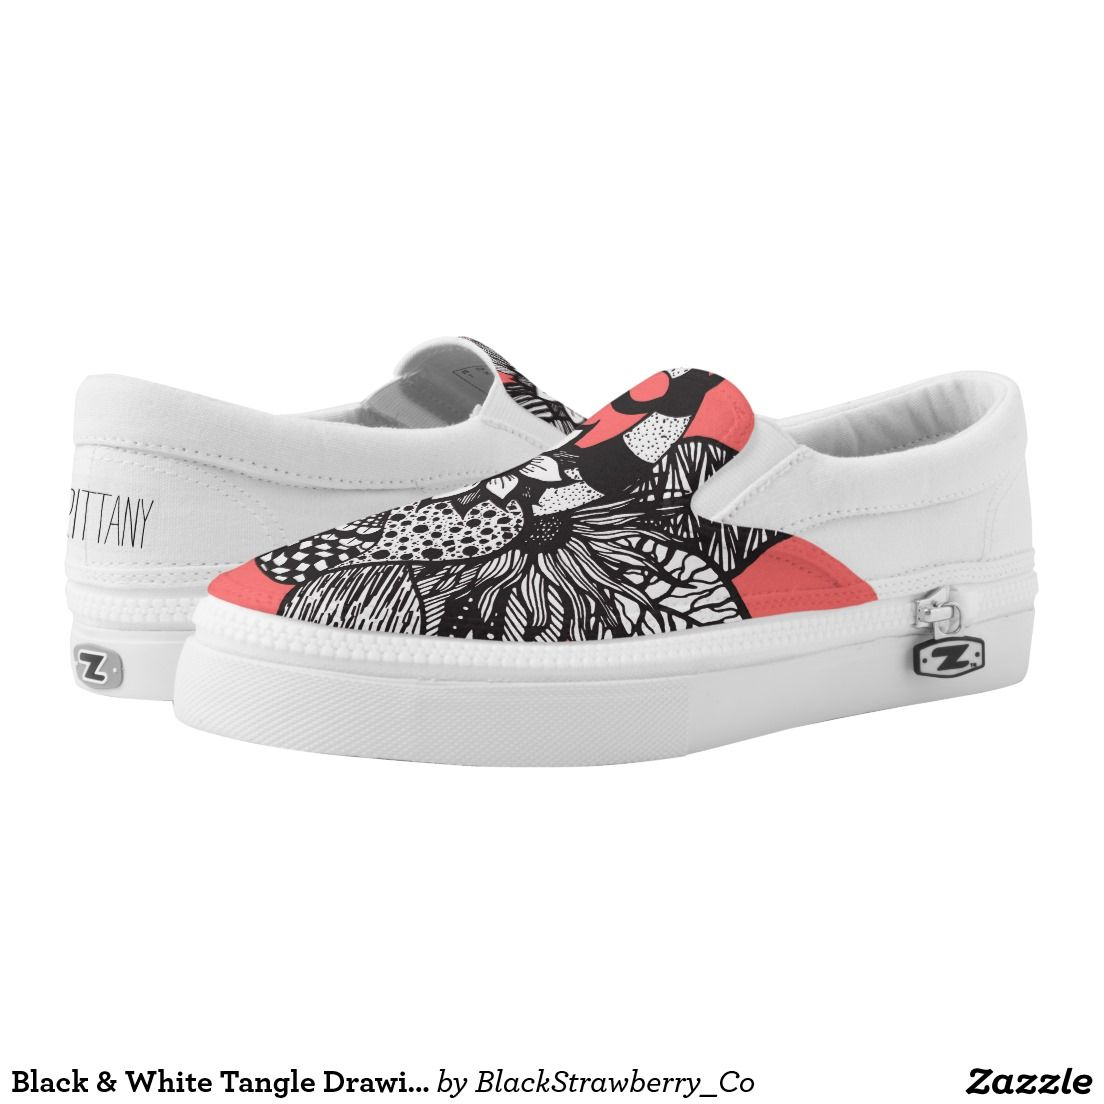 6dd8f61f8c03c Black   White Tangle Drawing Flowers And Swirls Printed Shoes Cool